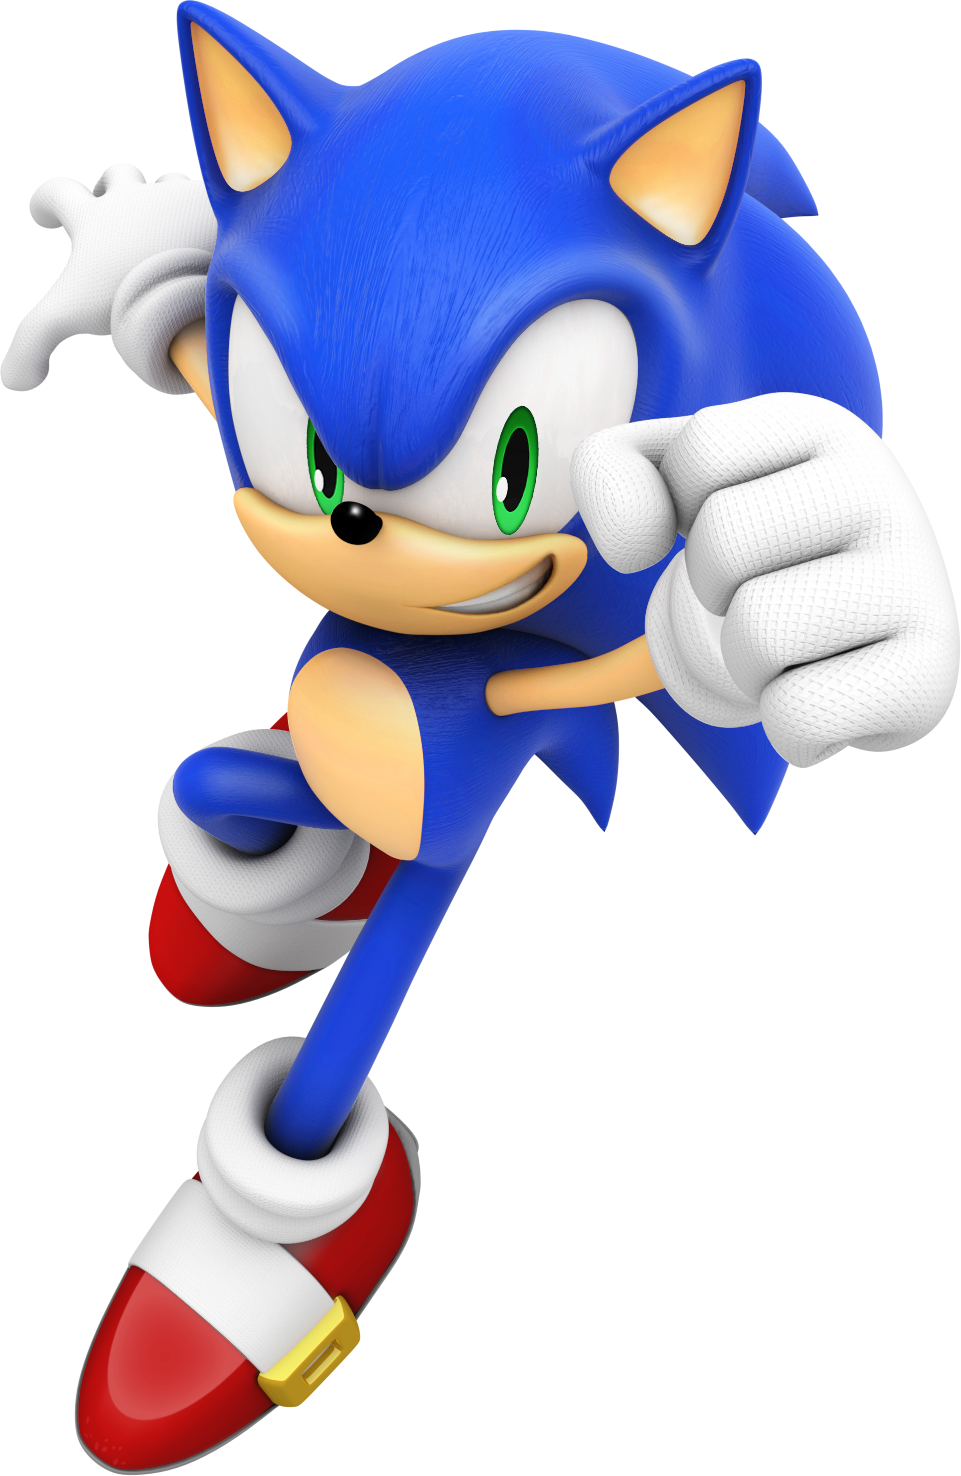 Download Sonic Toy Character Unleashed Fictional Colors Generations Hq Png Image In Different Resolution Freepngimg